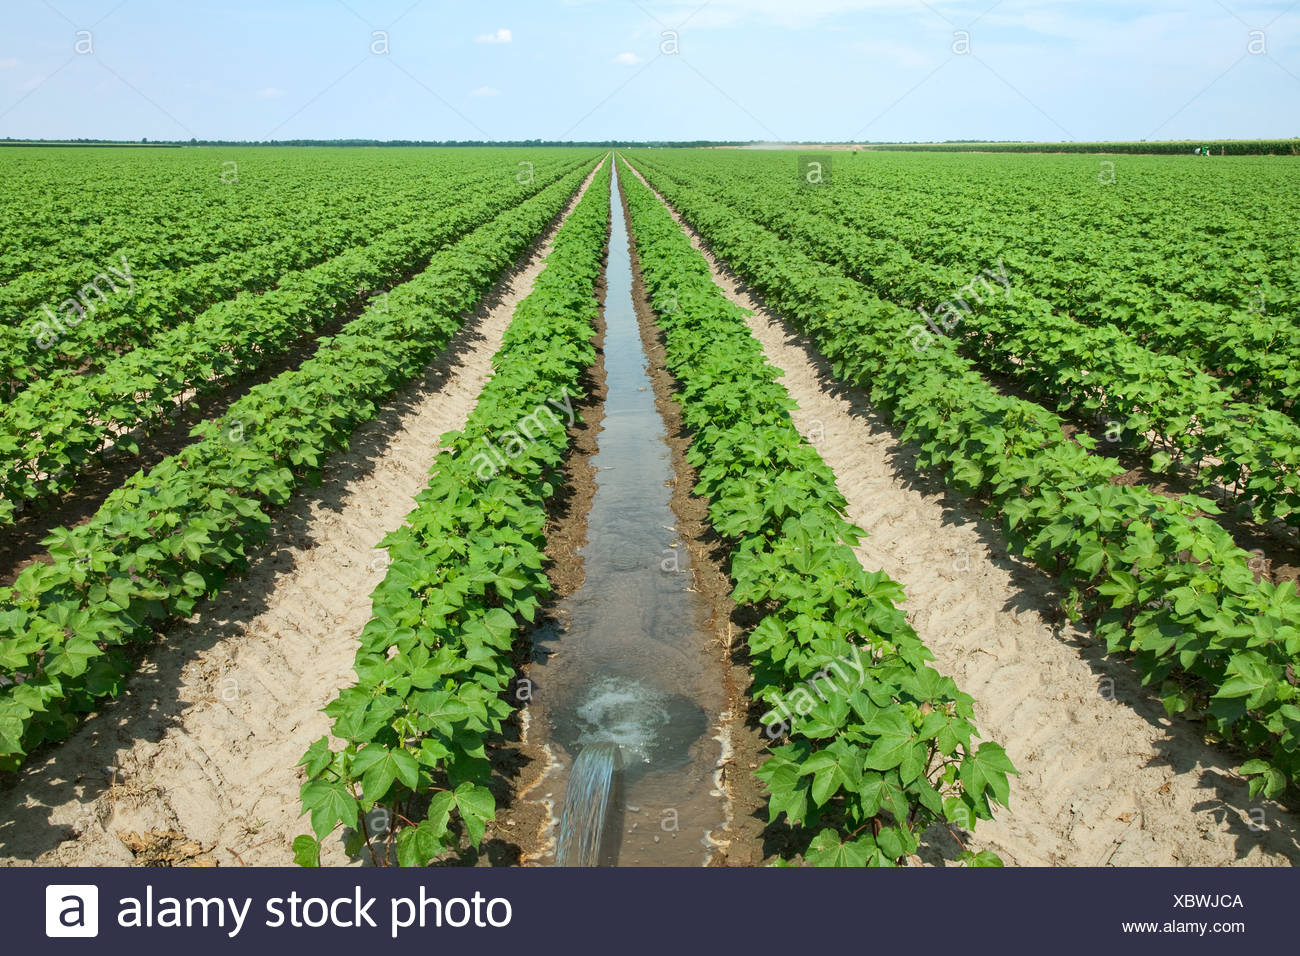 Field of mid growth cotton at fruit set stage, being furrow irrigated. The water is directed down every other row in the field. - Stock Image